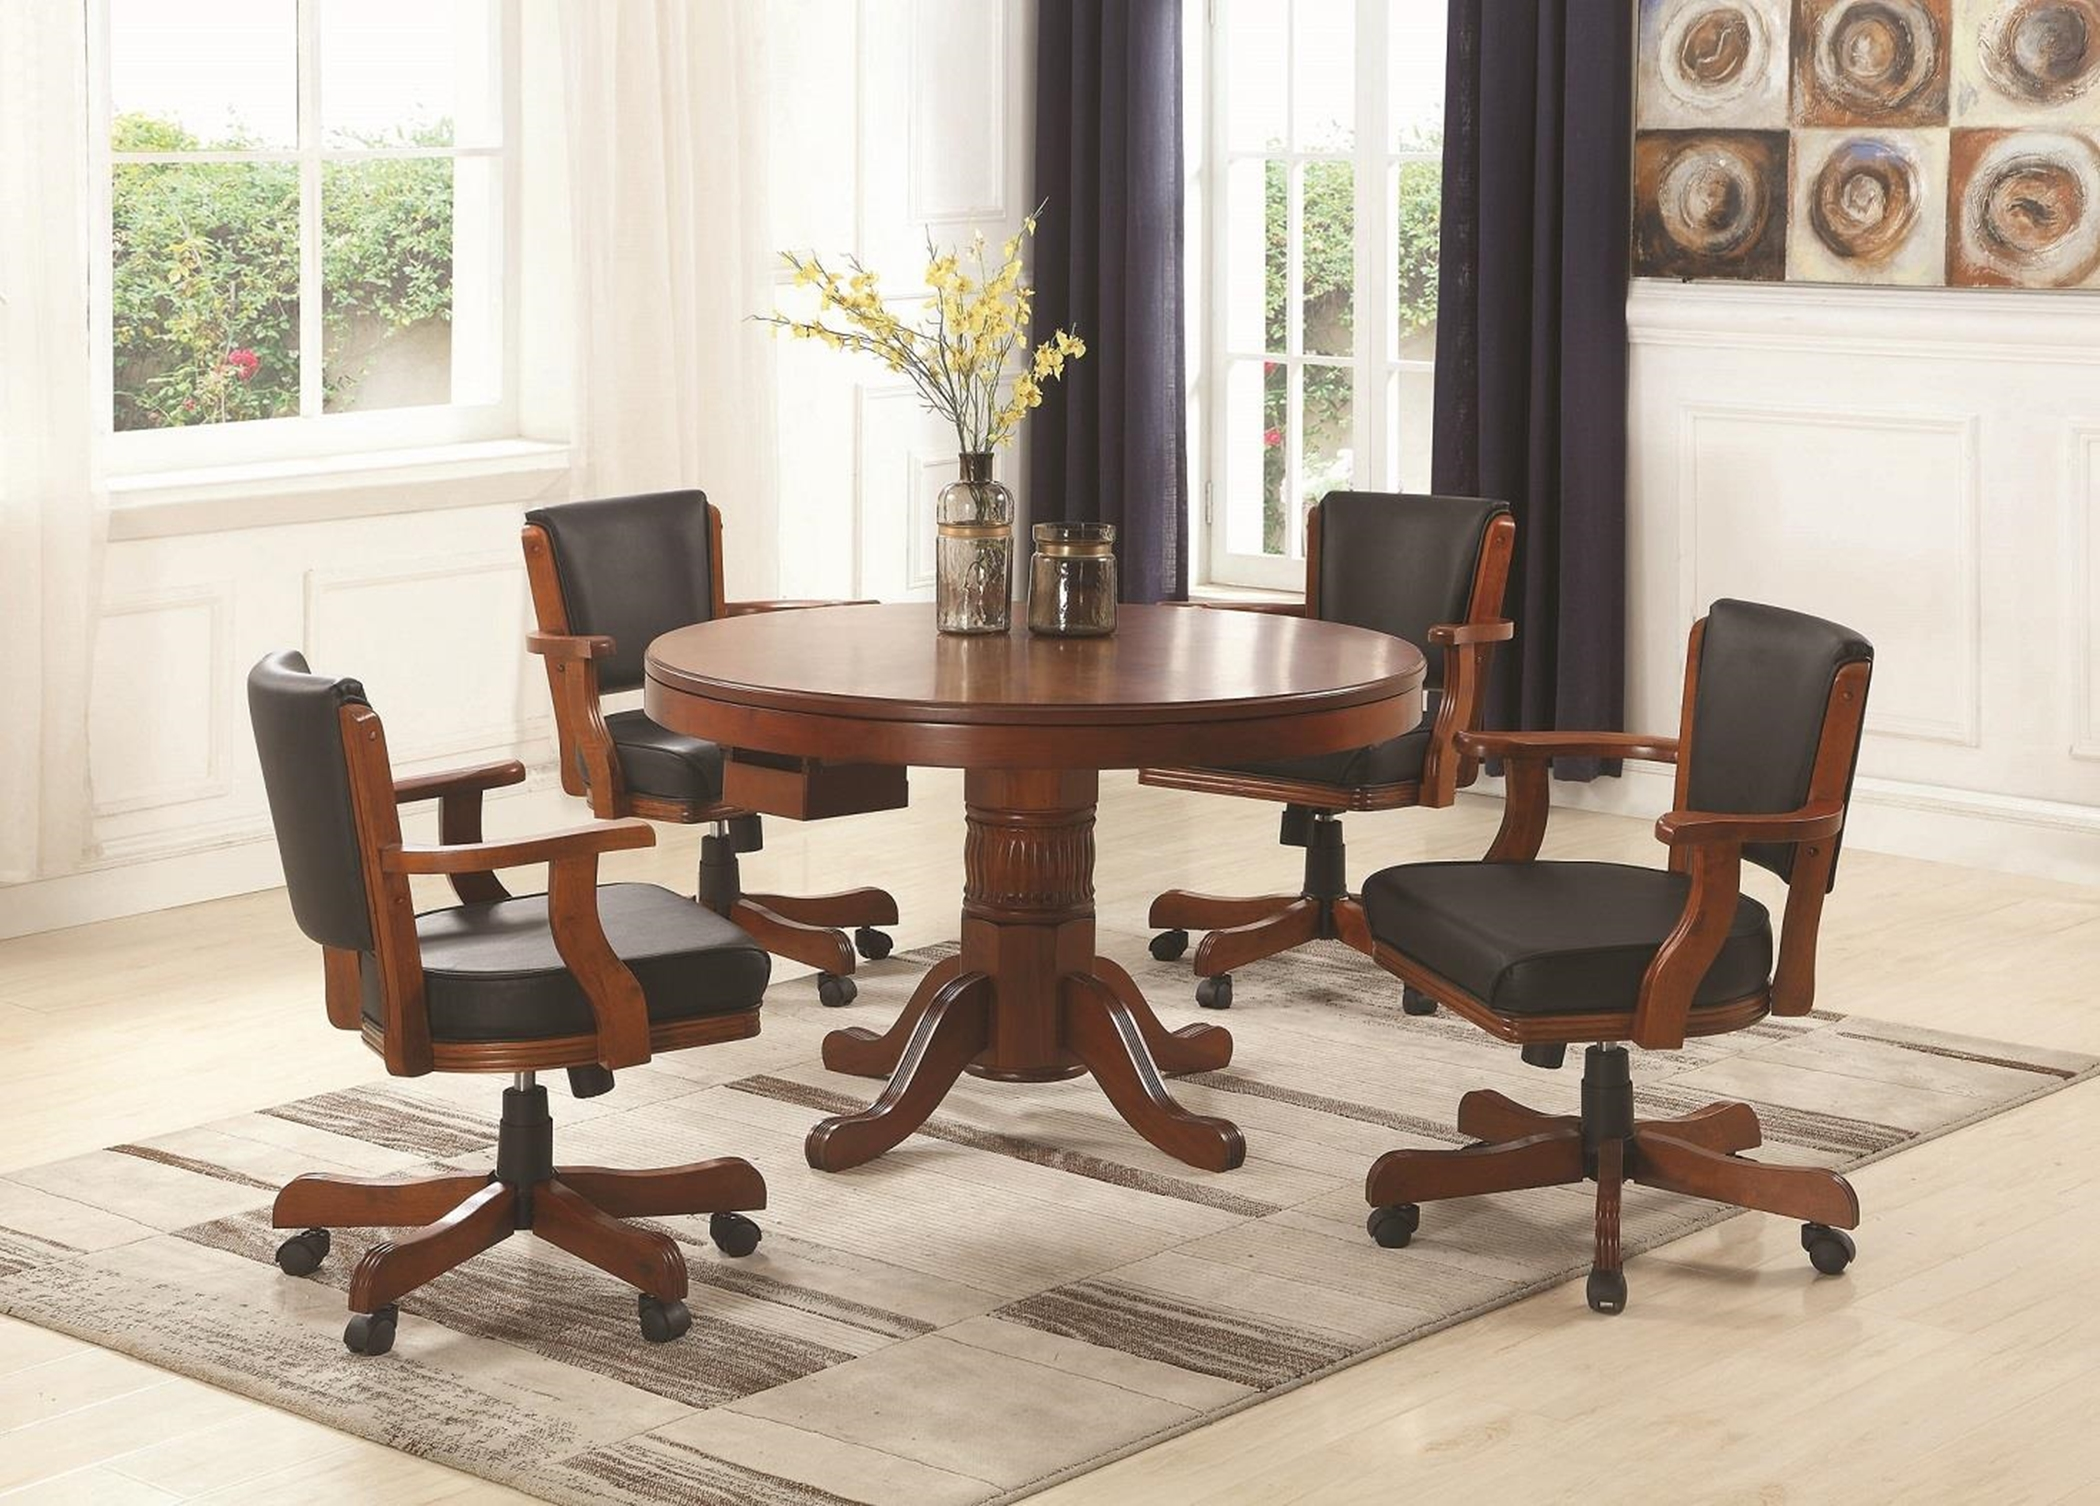 Mitchell Three-In-One Game Table & 4 Arm Chairs